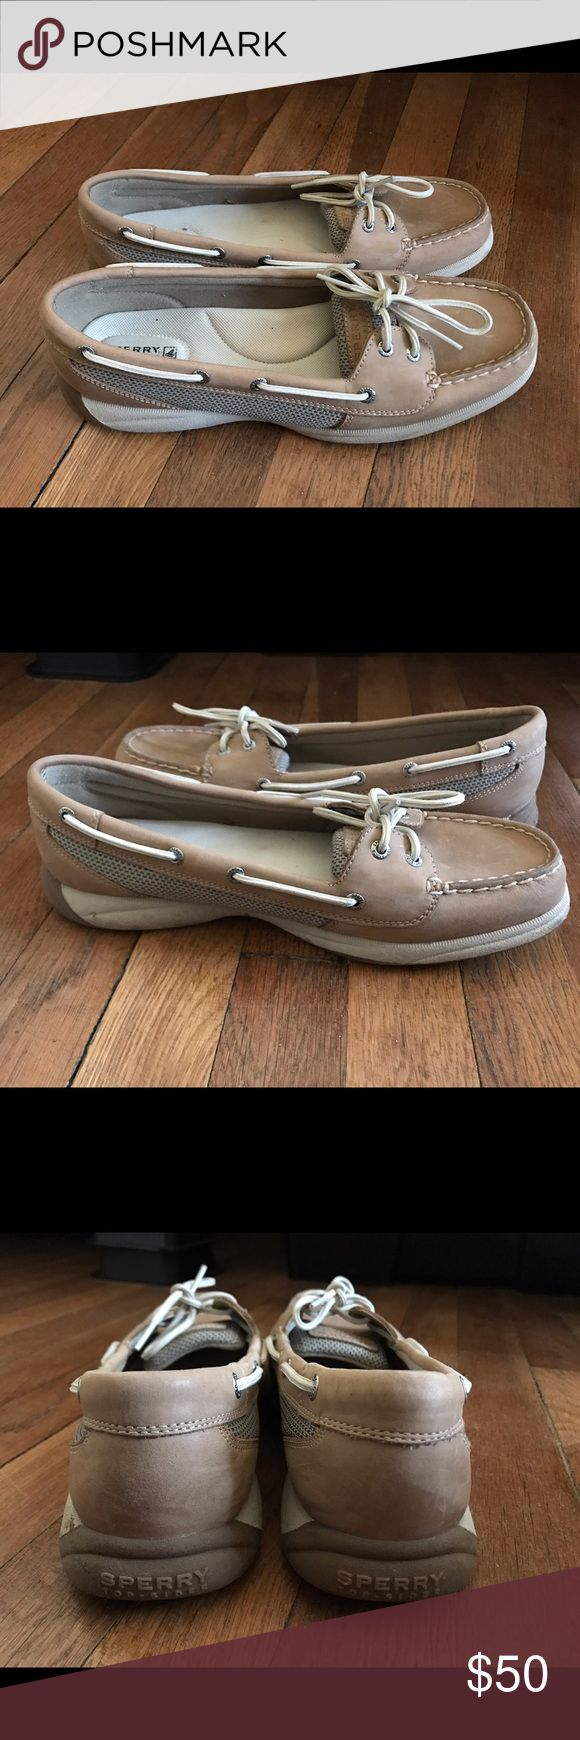 Sperry women's angelfish boat shoes Brand new, never worn, got as a gift but are a size too big. They have no scratches , scuffs, dirt, stains and bottoms are clean also super comfy :)) Sperry Top-Sider Shoes Sneakers